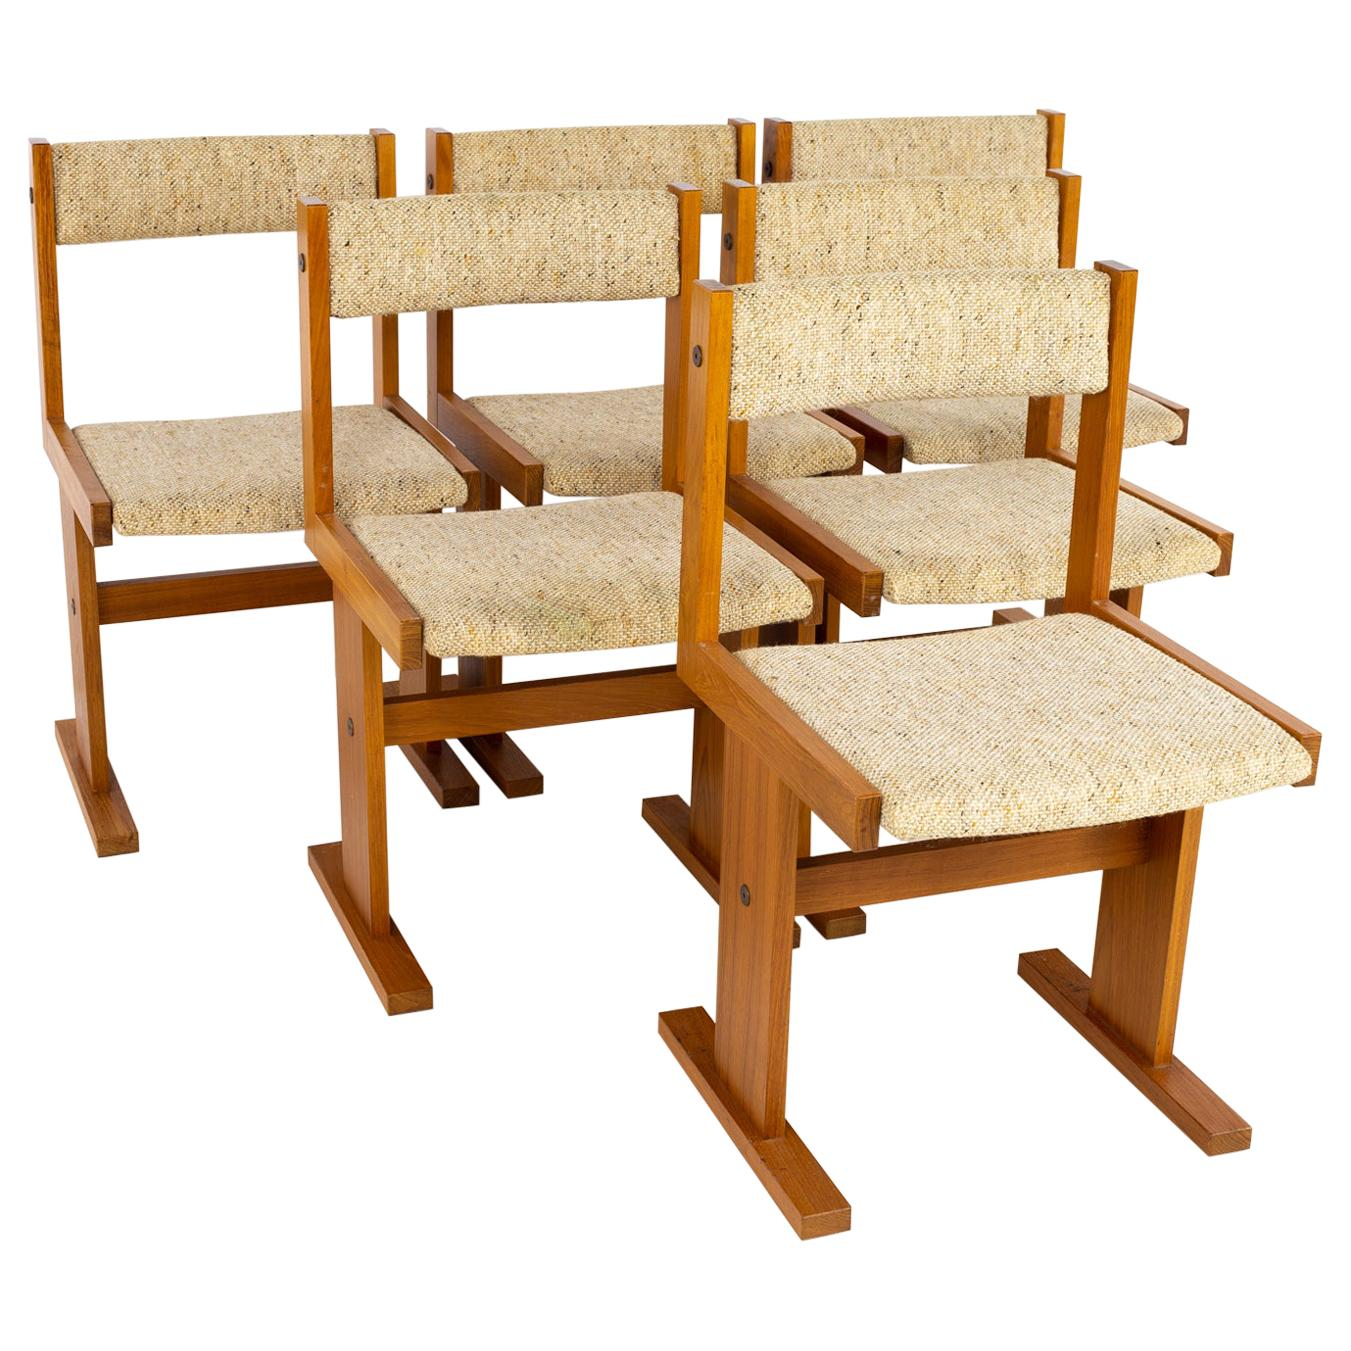 Gangso Mobler Mid Century Teak Dining Chairs, Set of 6